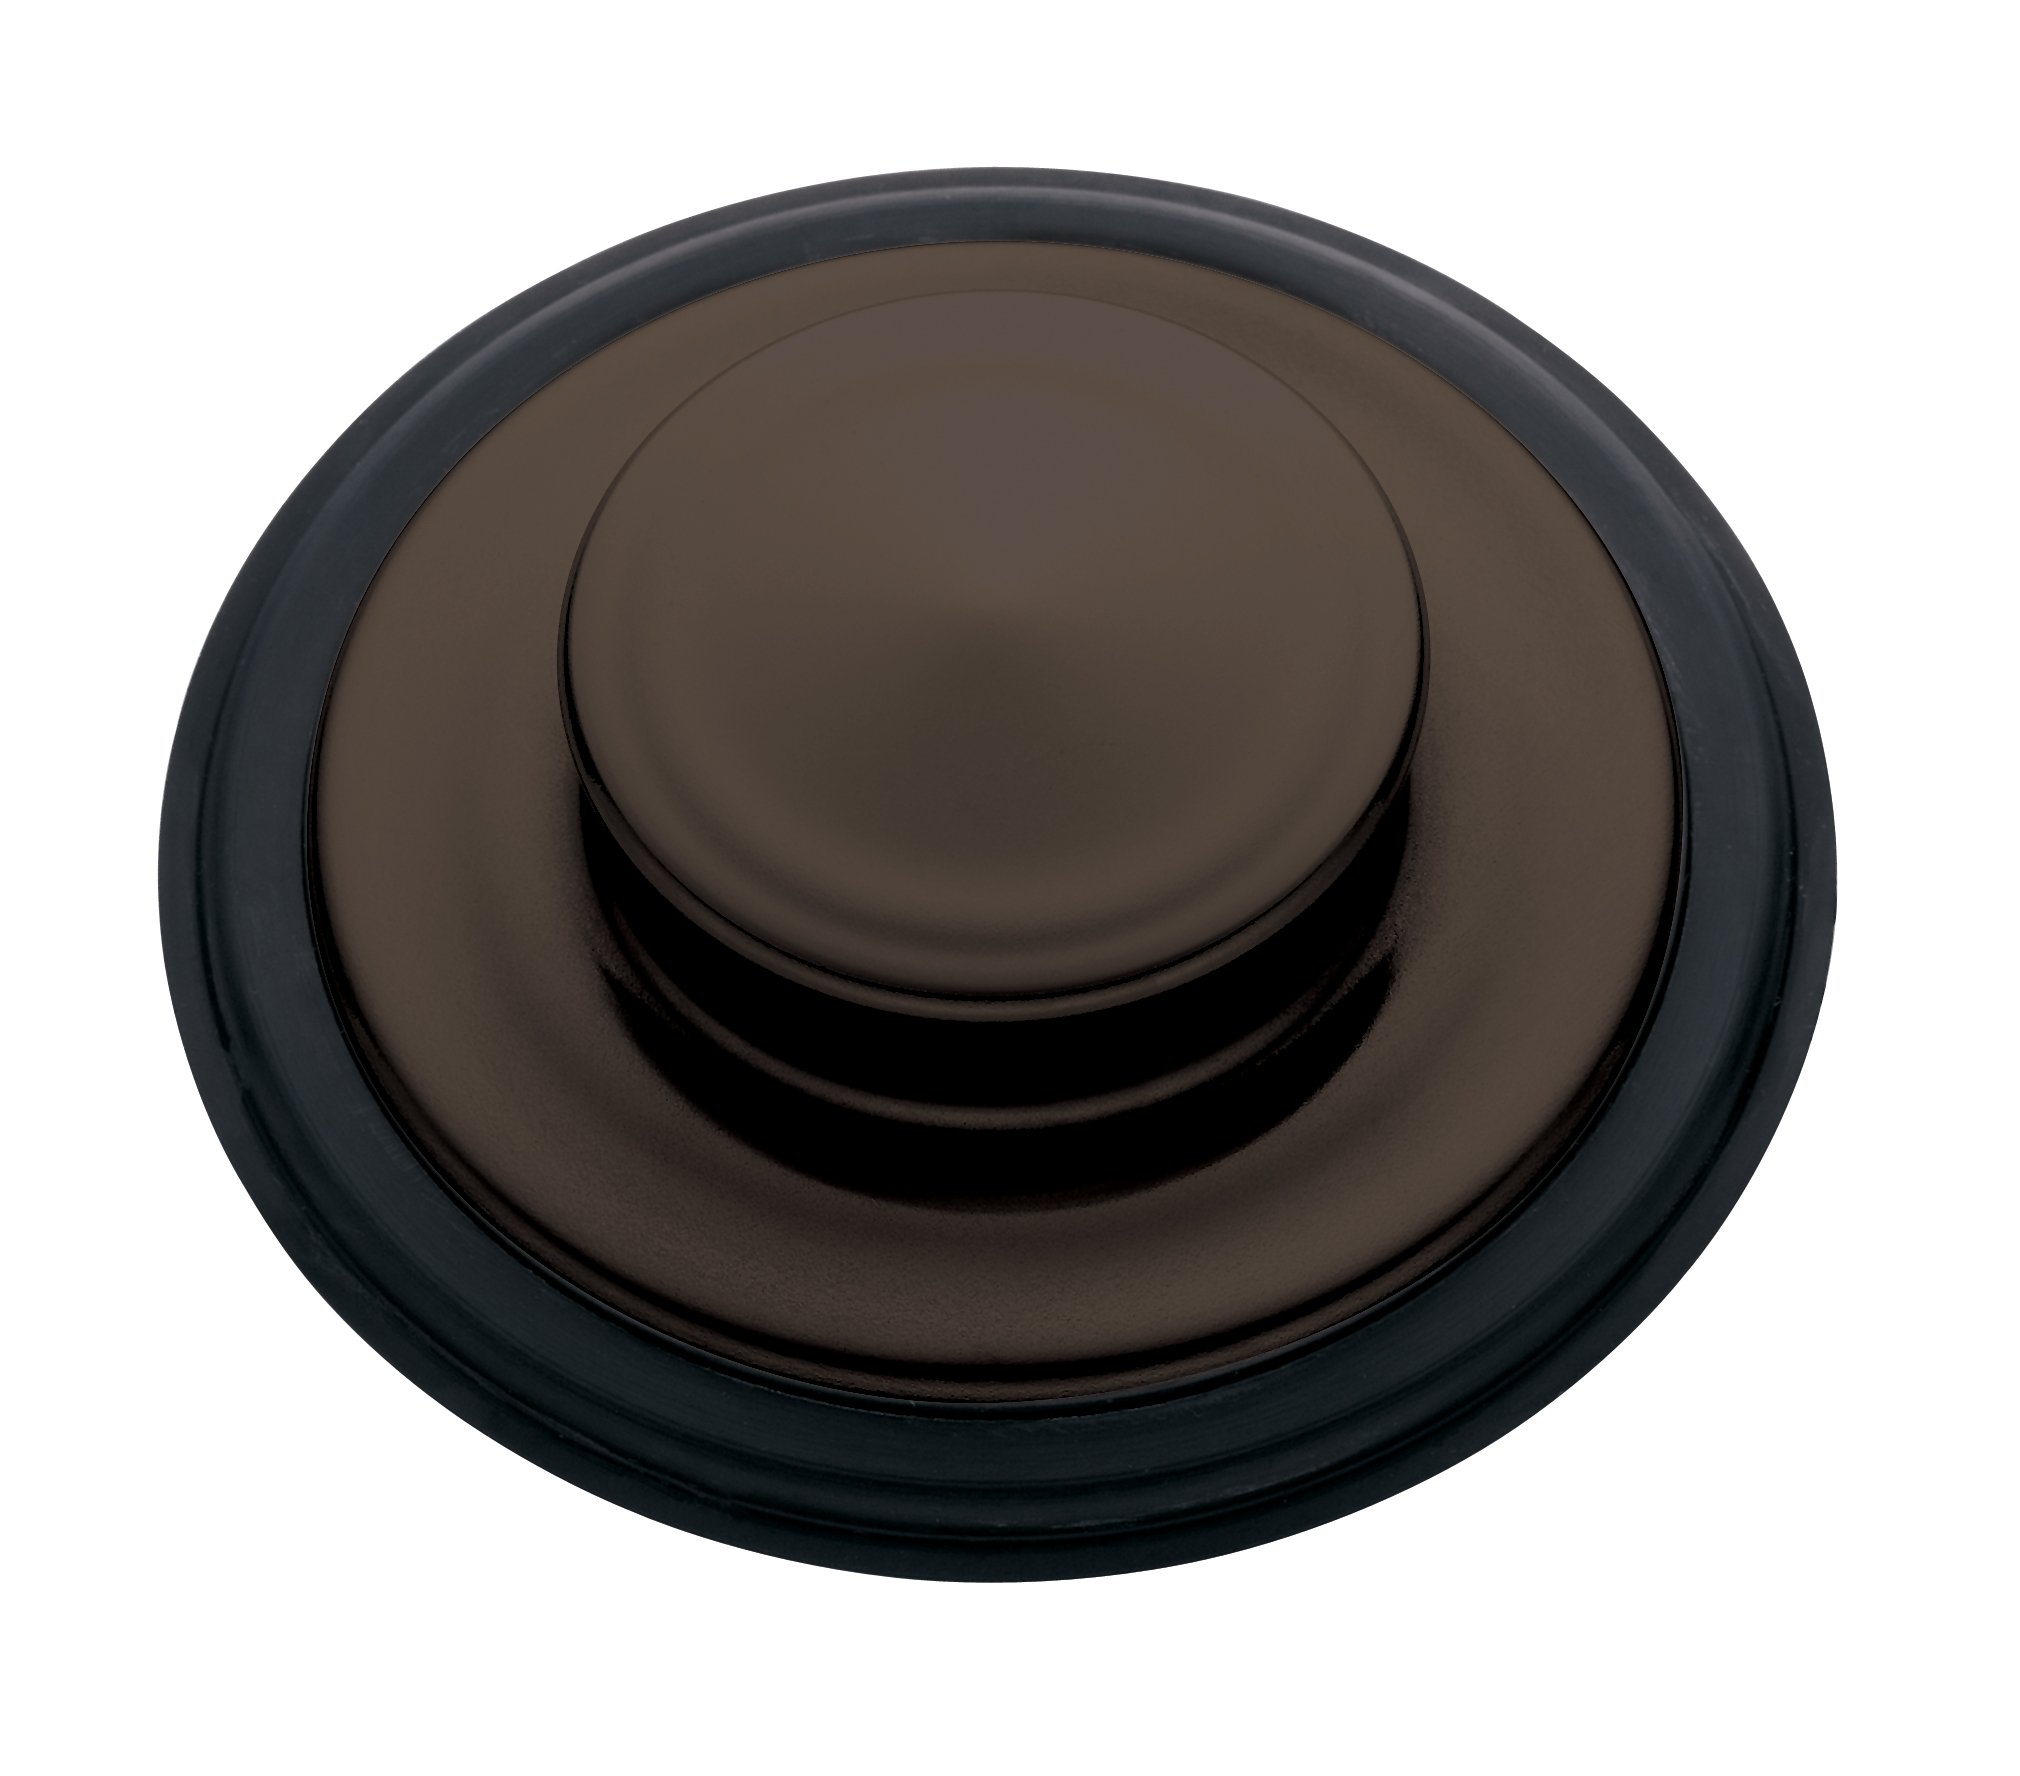 InSinkErator  STP-ORB Sink Stopper for Garbage Disposals, Oil-Rubbed Bronze by InSinkErator